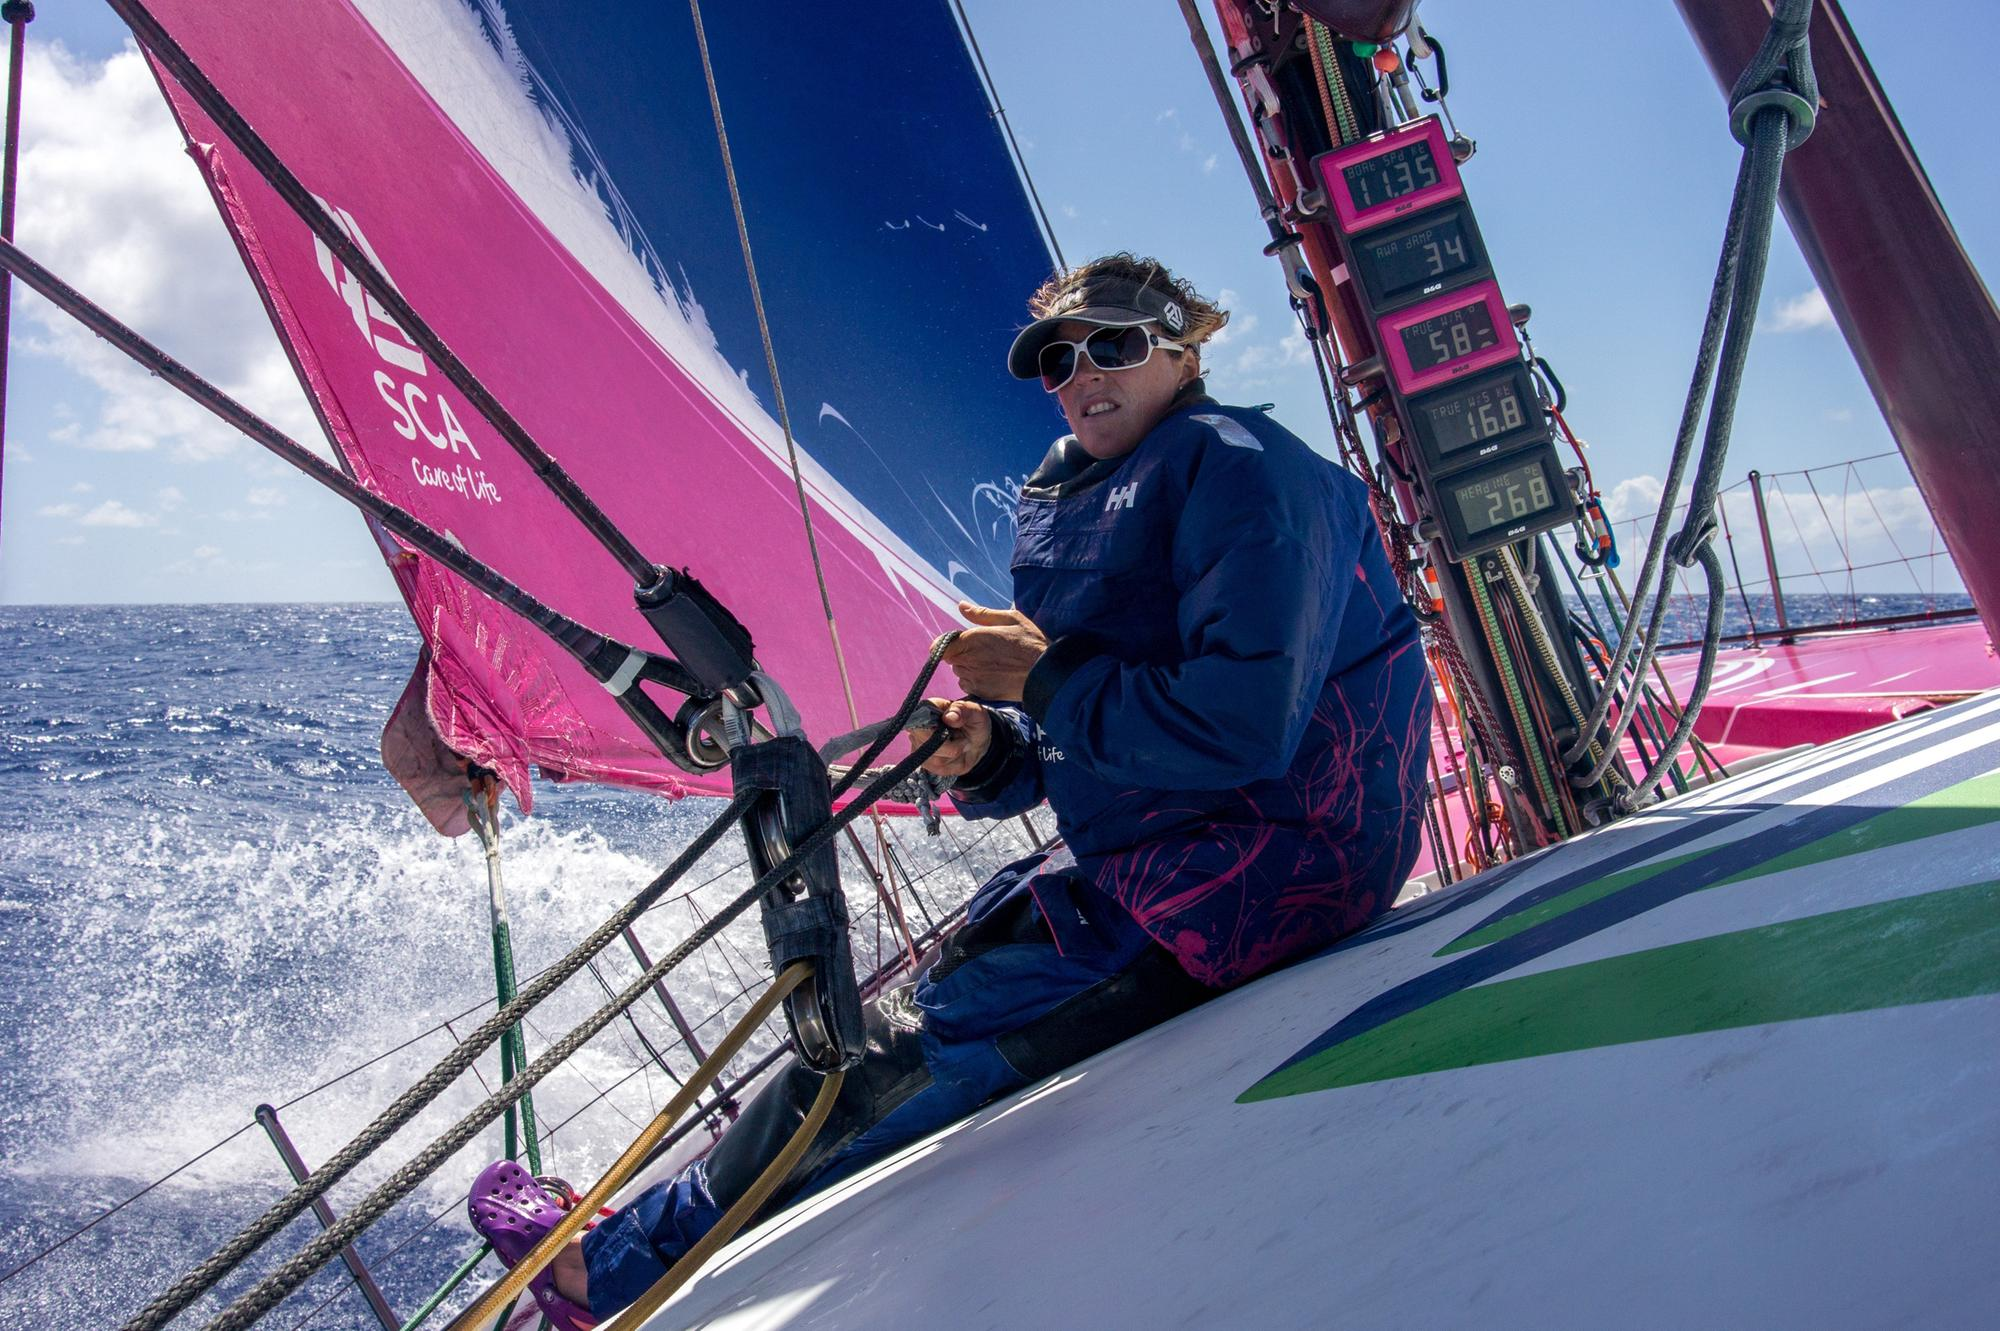 Portsmouth-born Davies' Vendée Globe has been put into doubt after 'violent' collision